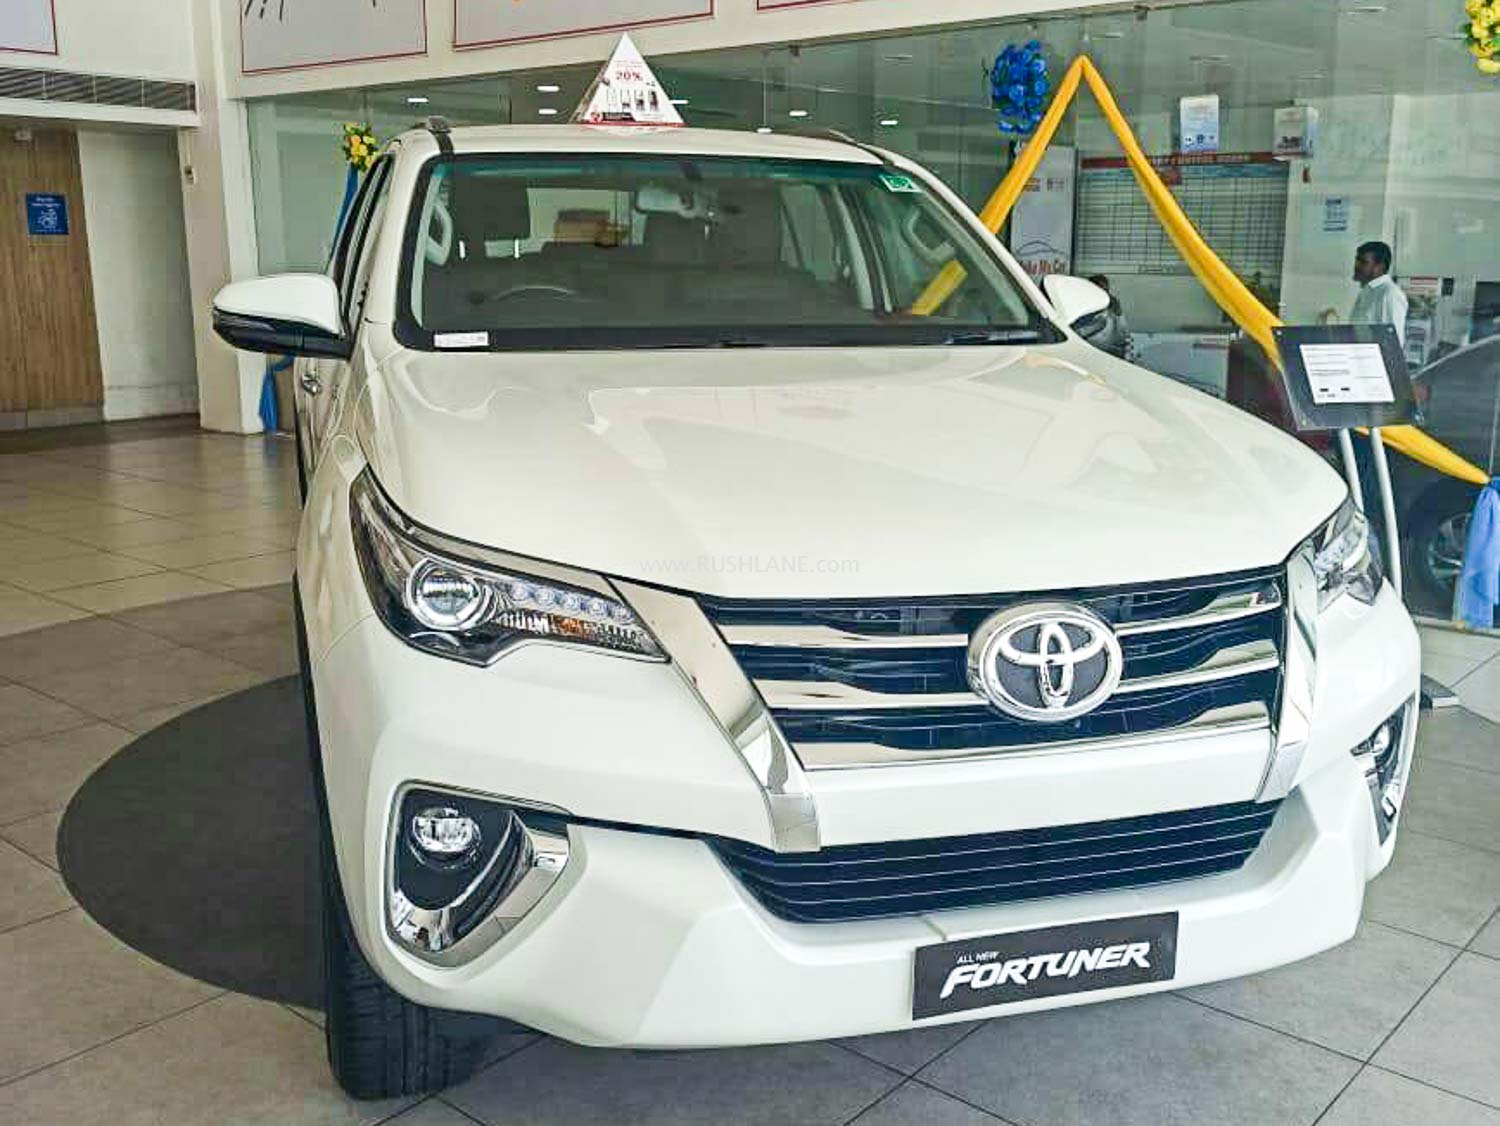 Premium SUV sales June 2020 – Toyota Fortuner beats Ford Endeavour